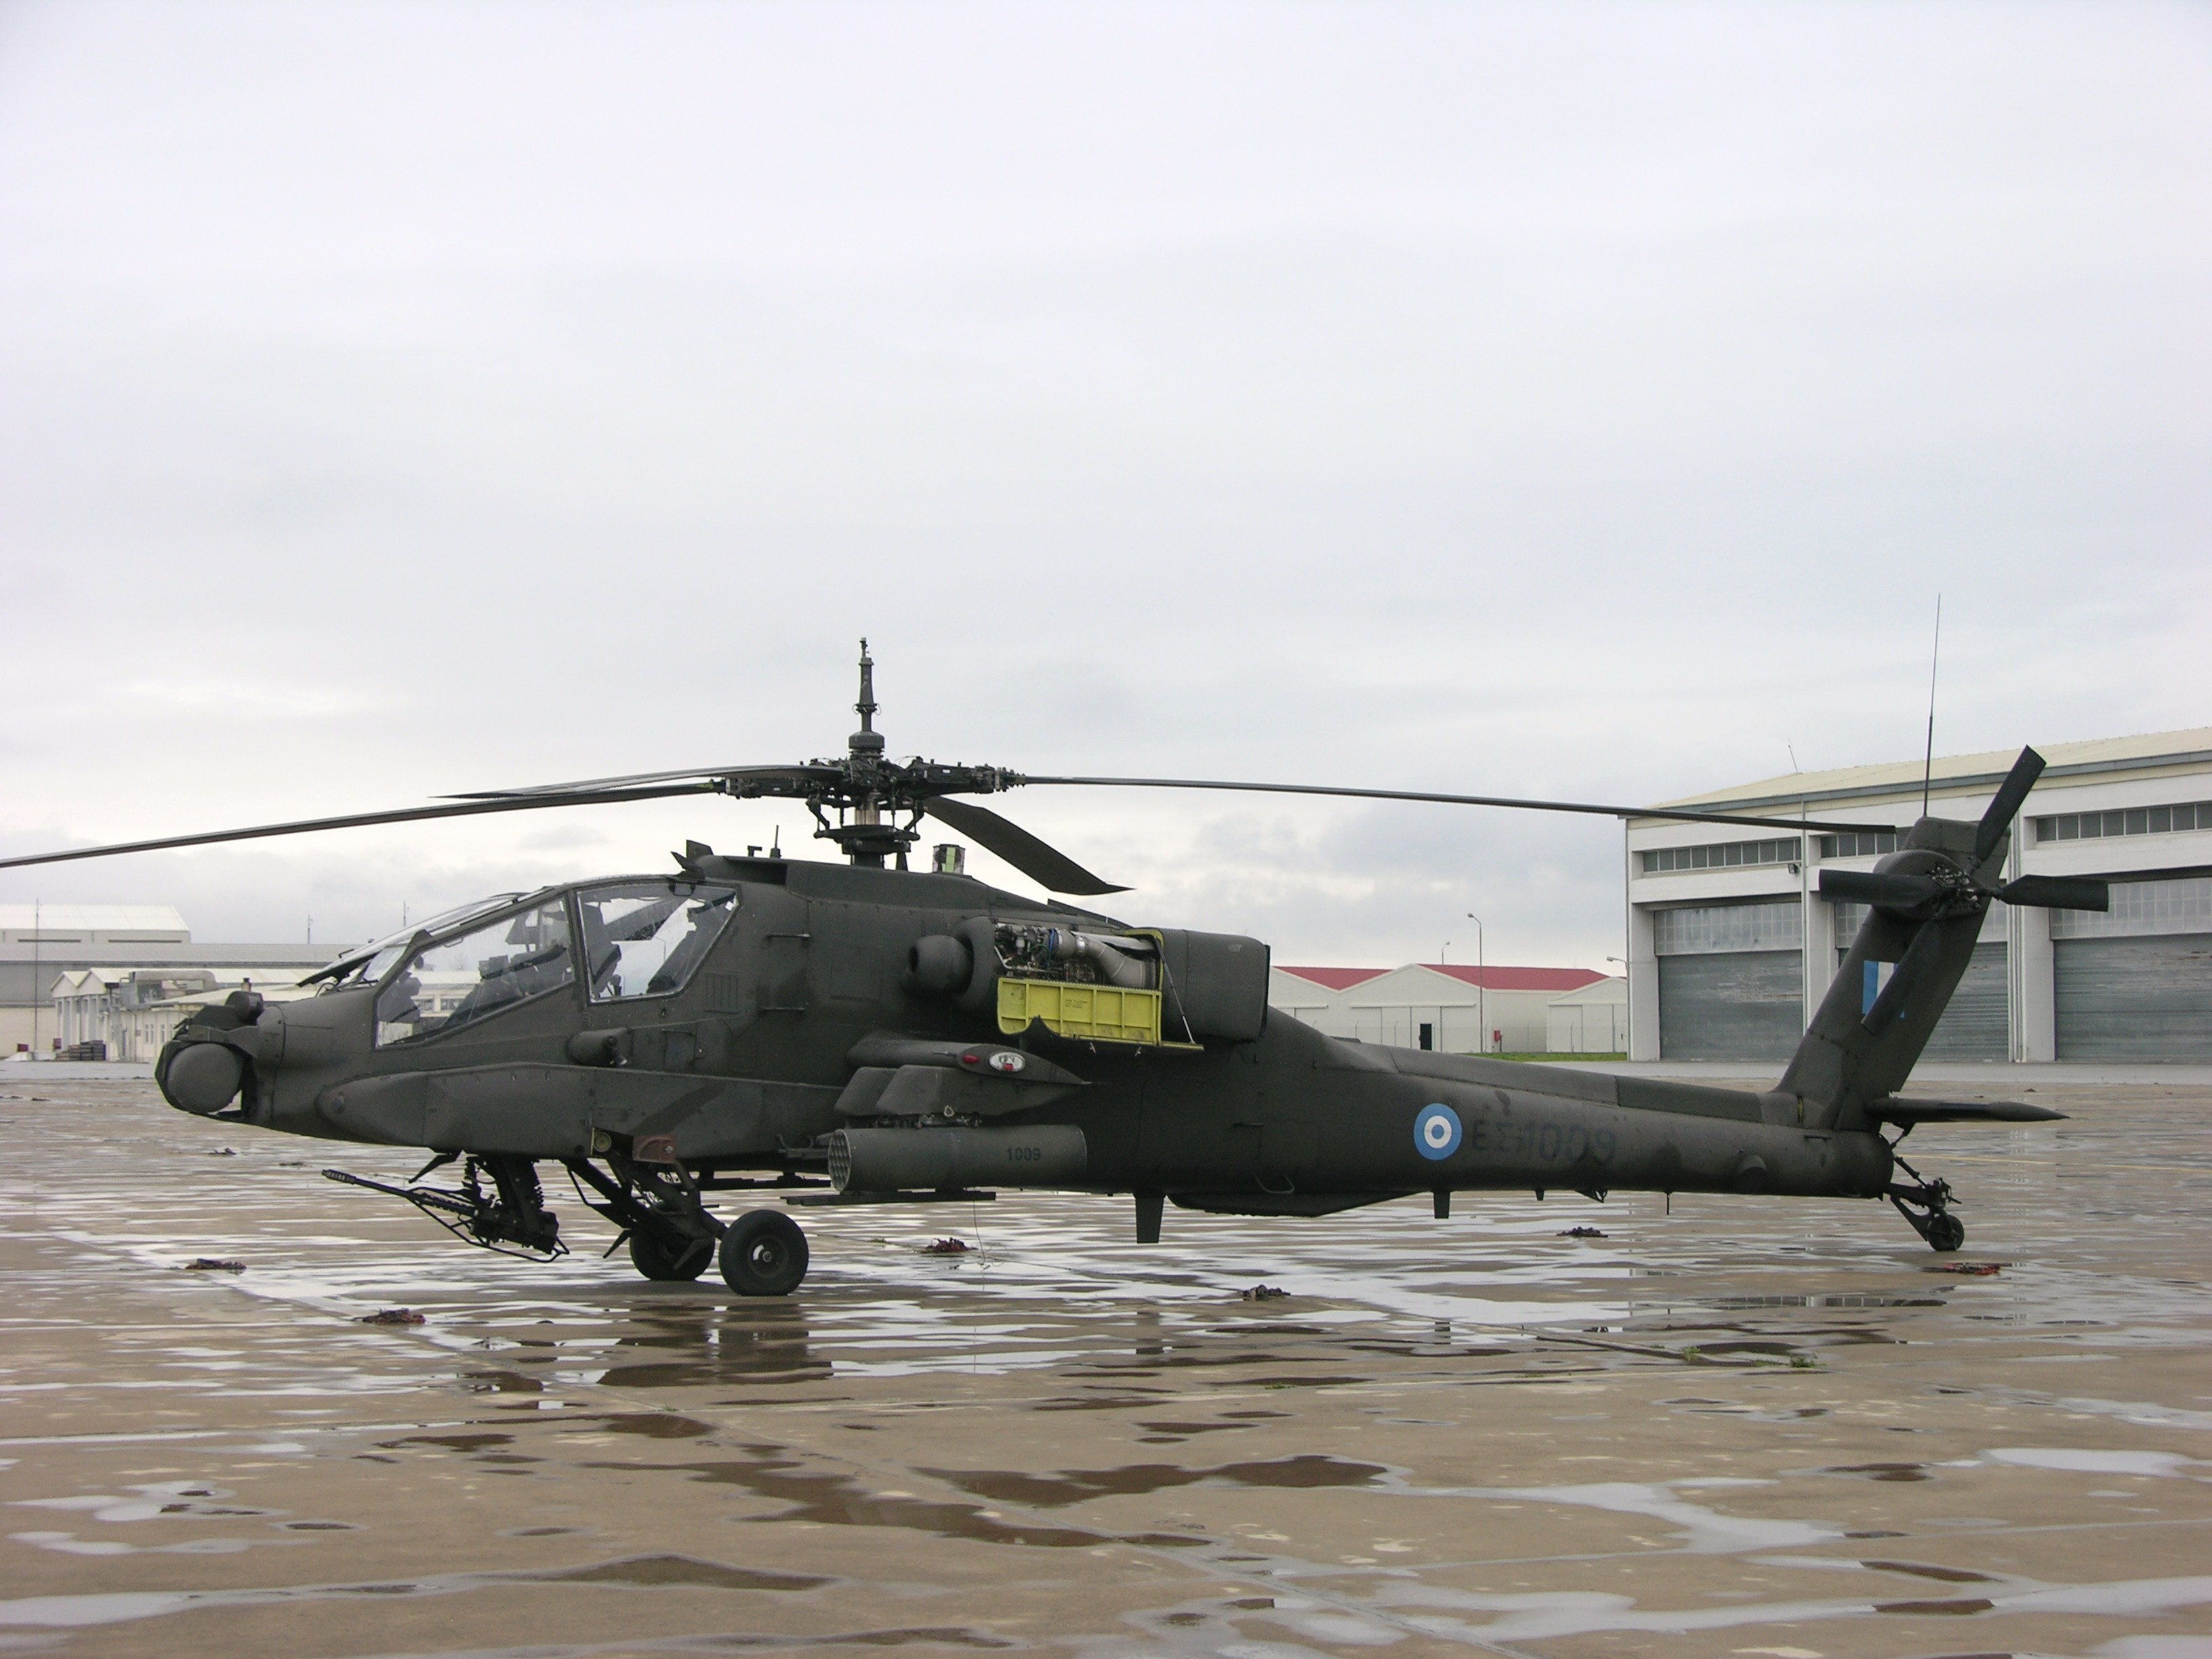 ah 64 apache helicopter with File Ah 64a Apache Greek Army Stefanovikion 3 on 3283 also Ihadss Sensasi Teknologi Blue Thunder Untuk Ah 64e Apache Guardian Tni Ad together with Problemas En La Industria Militar Rusa furthermore File ah 64a apache greek army stefanovikion 3 besides A2 31 95 01300000239924122631952986113.